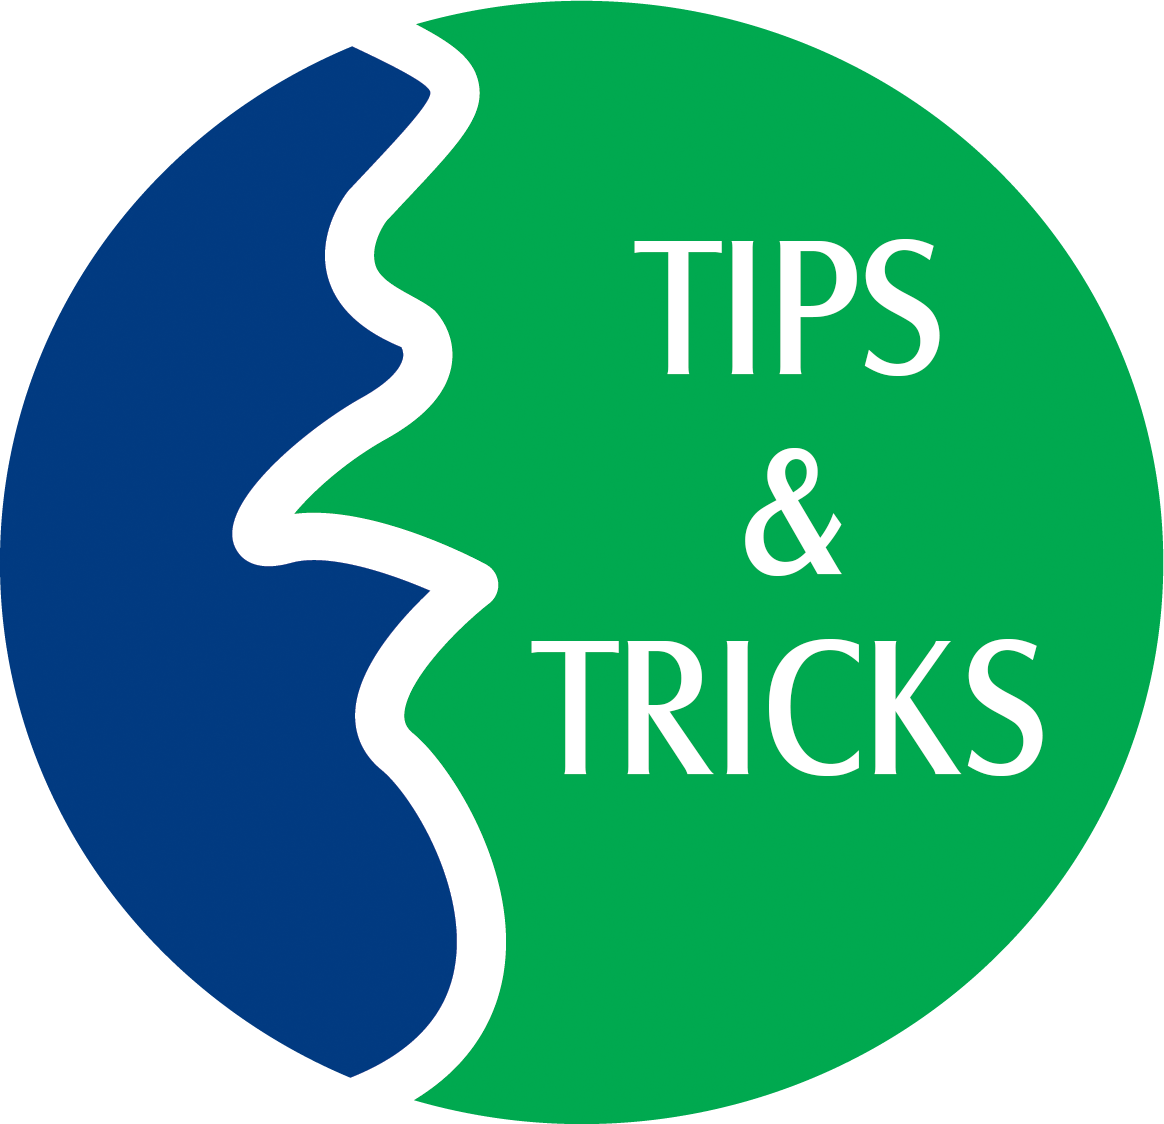 Tips_and_Tricks.png